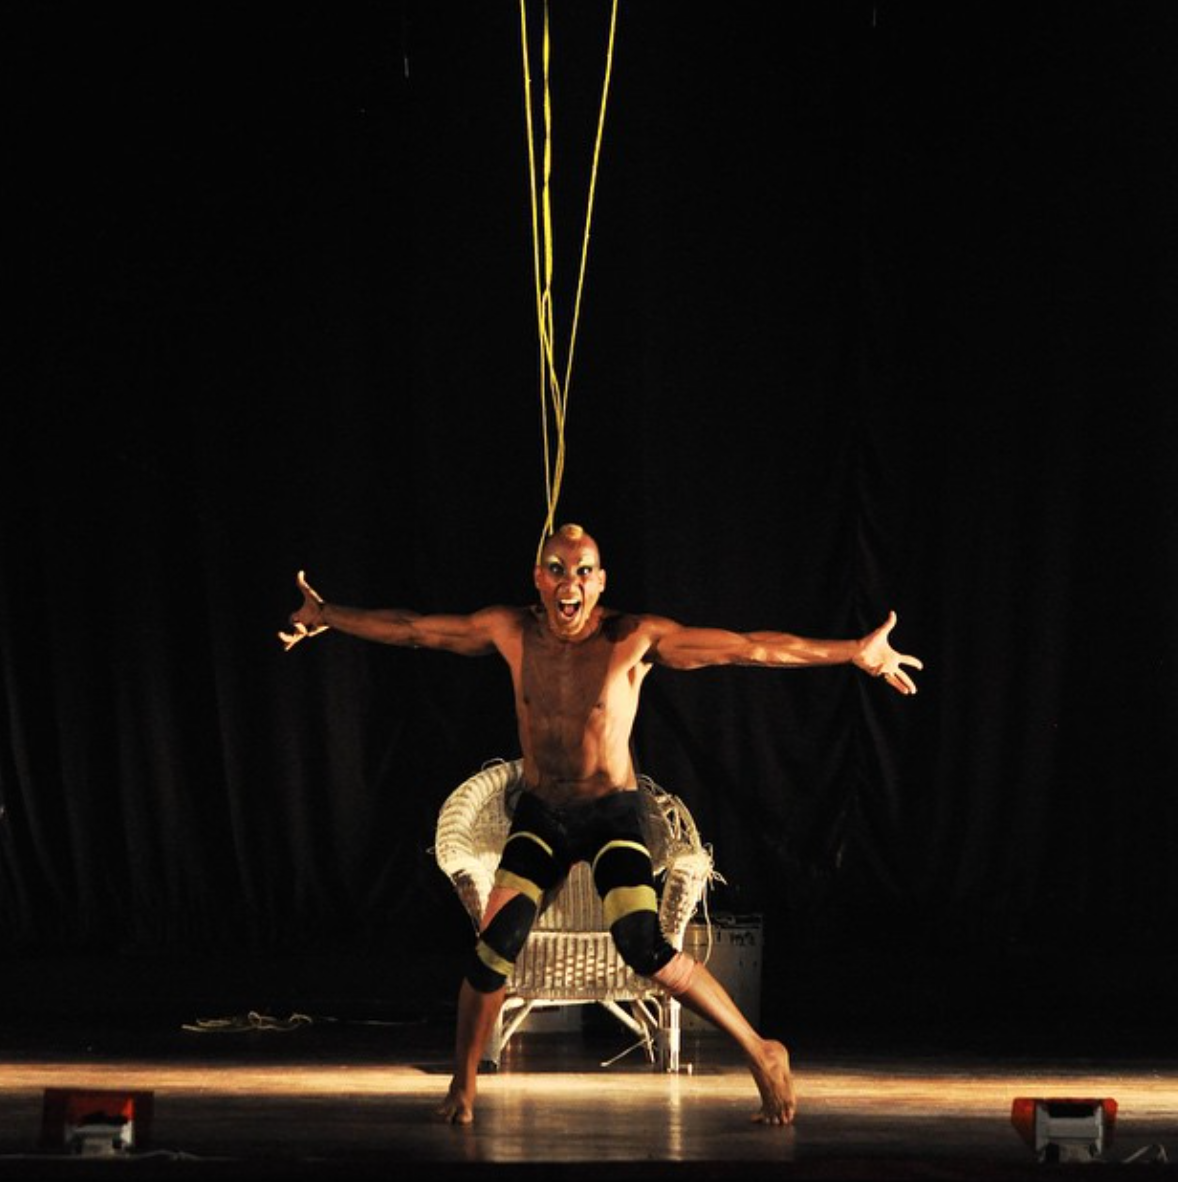 """The street art piece """"Olympia"""" by Brazilian company Andante de Brazil was performed at the Christ the King Theatre (LuisCantillo)"""